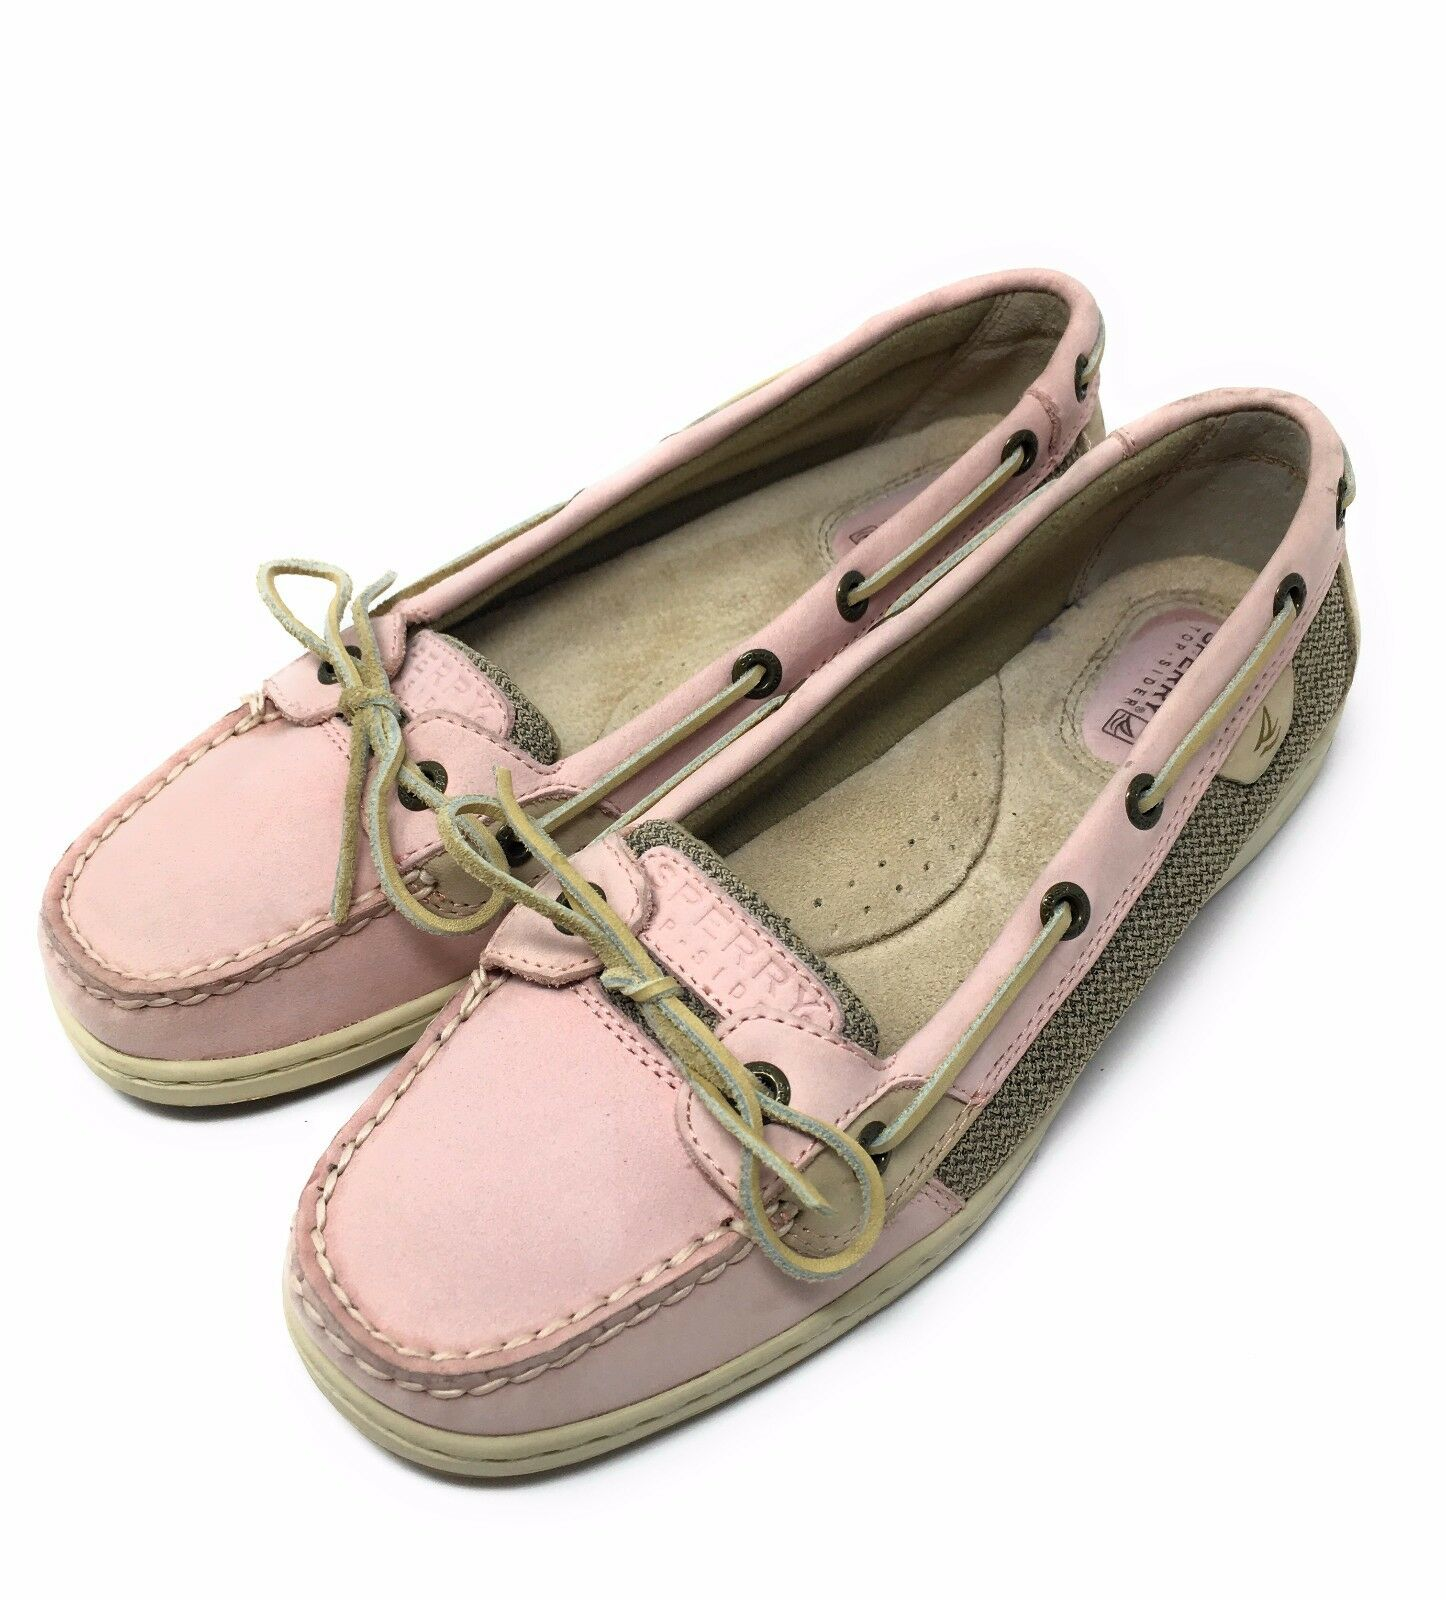 Sperry Top Sider Damenschuhe Casual Boat Schuhes Pink Tan Leder Größe 8 9102039